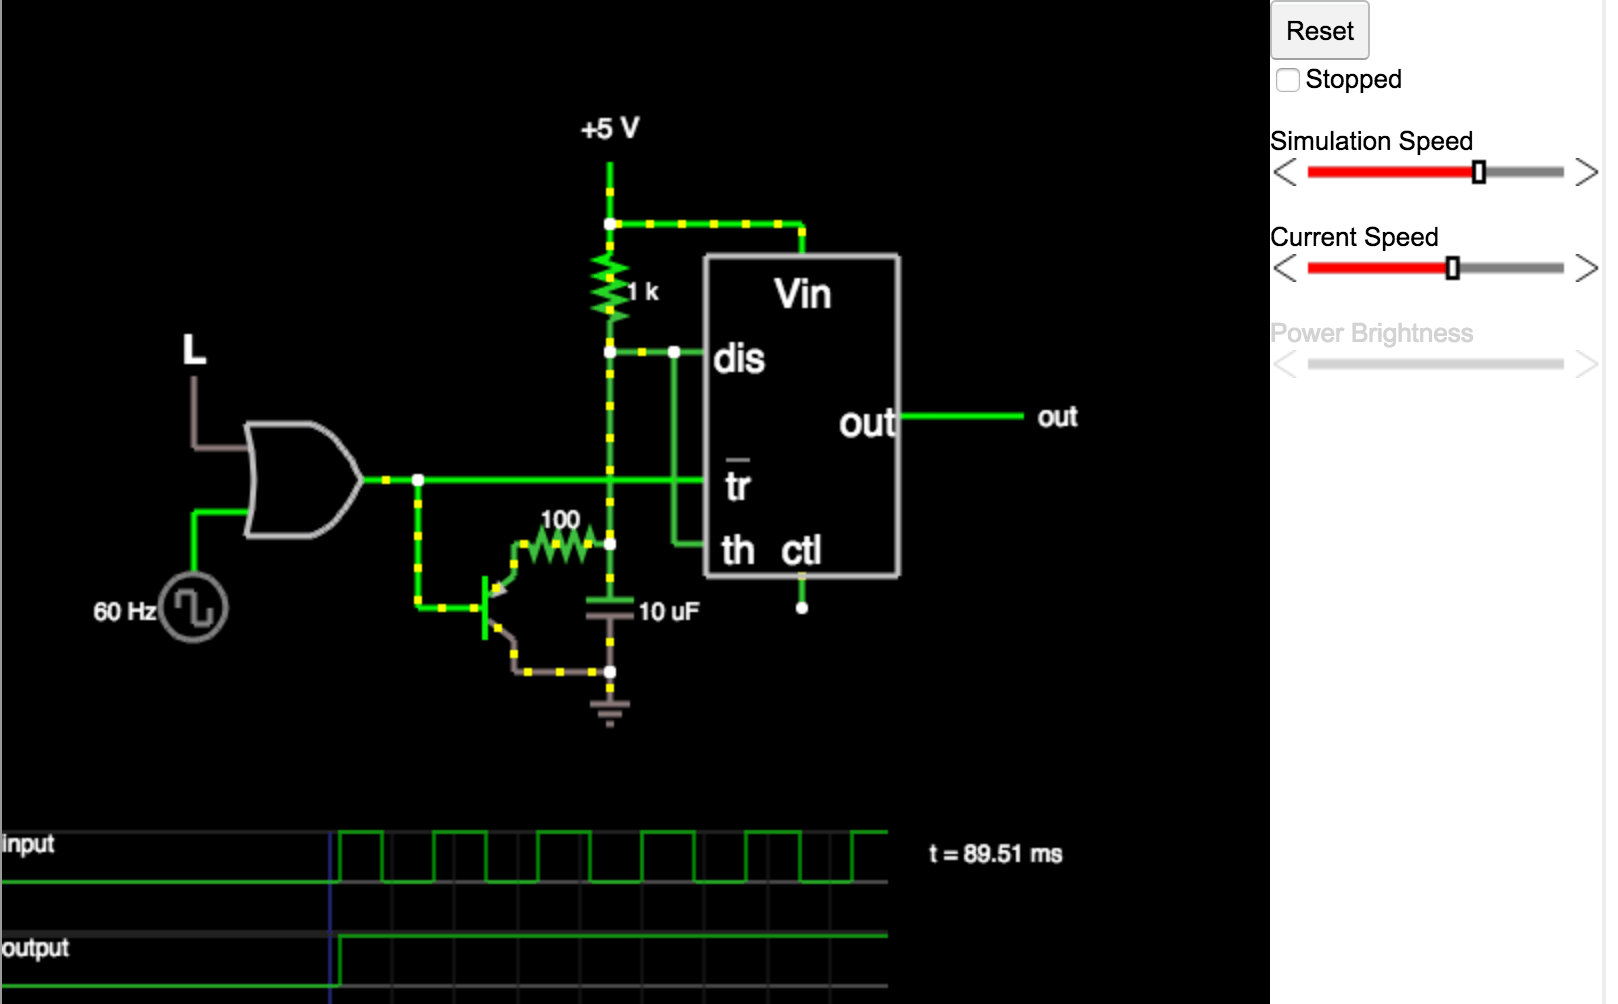 Circuit Diagramscircuitlab Online Schematic Editor Diagram Simulator Wiring Diagrams Design Circuits Easily With Web Based Make Electric Tool